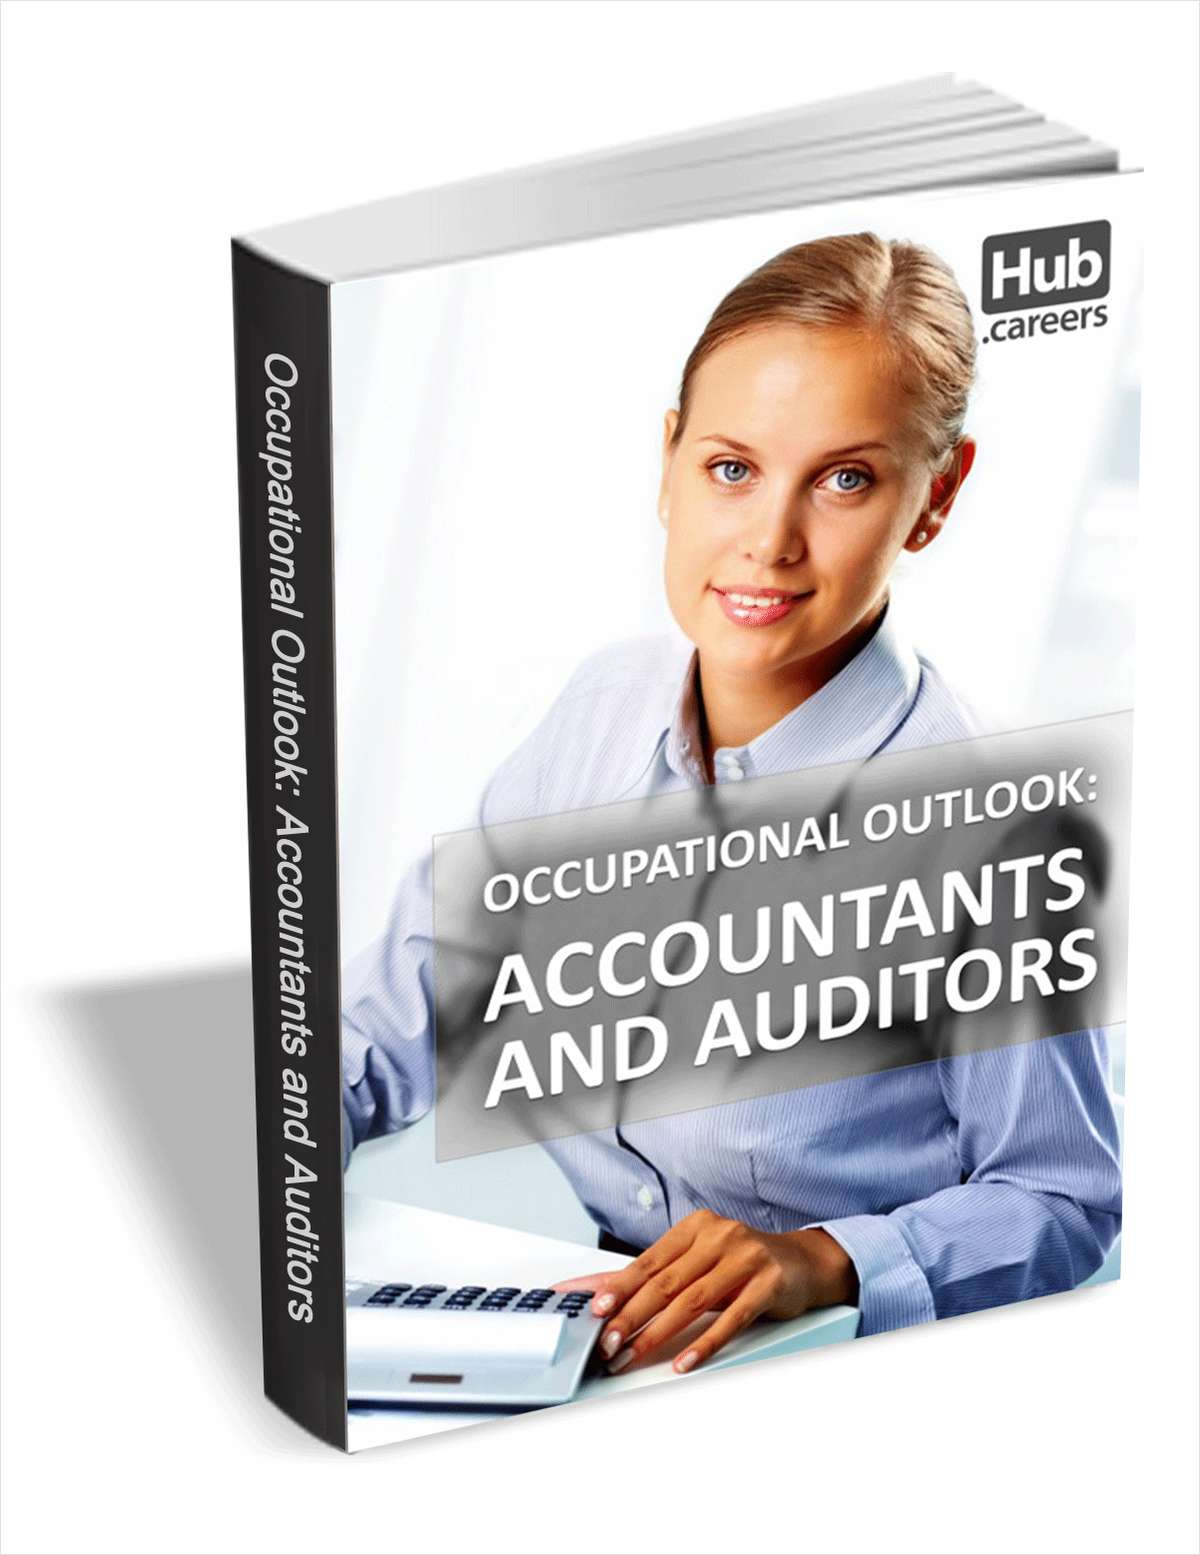 Accountants and Auditors - Occupational Outlook